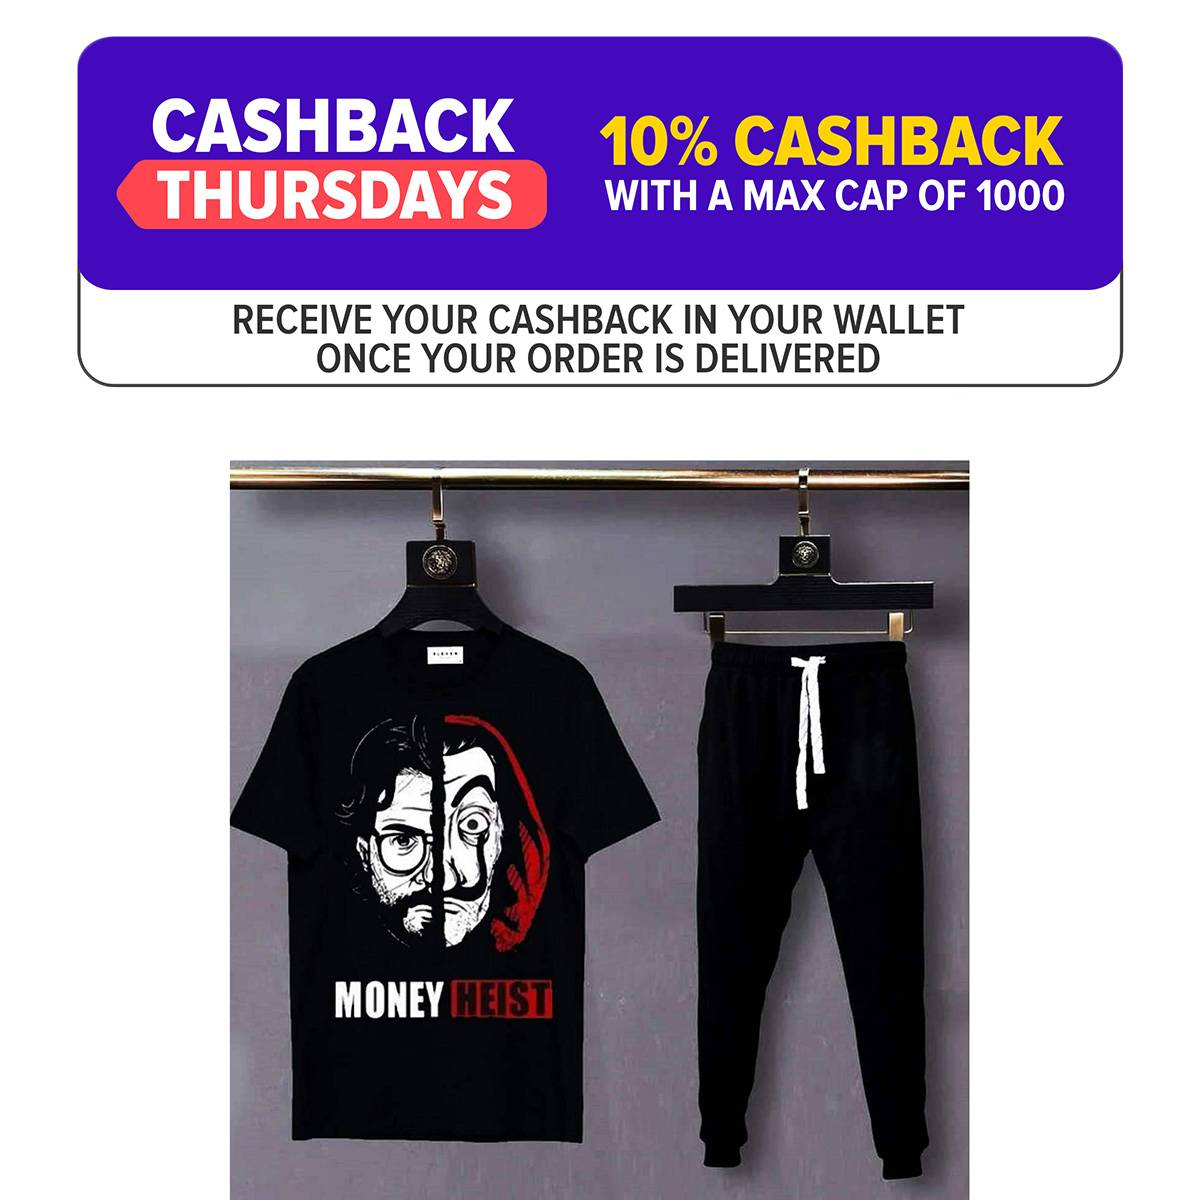 Pack Of 2 Money Heist Printed Cotton T Shirt With Matching Trouser For Men Summer Tees And Jogging Pants Top Quality